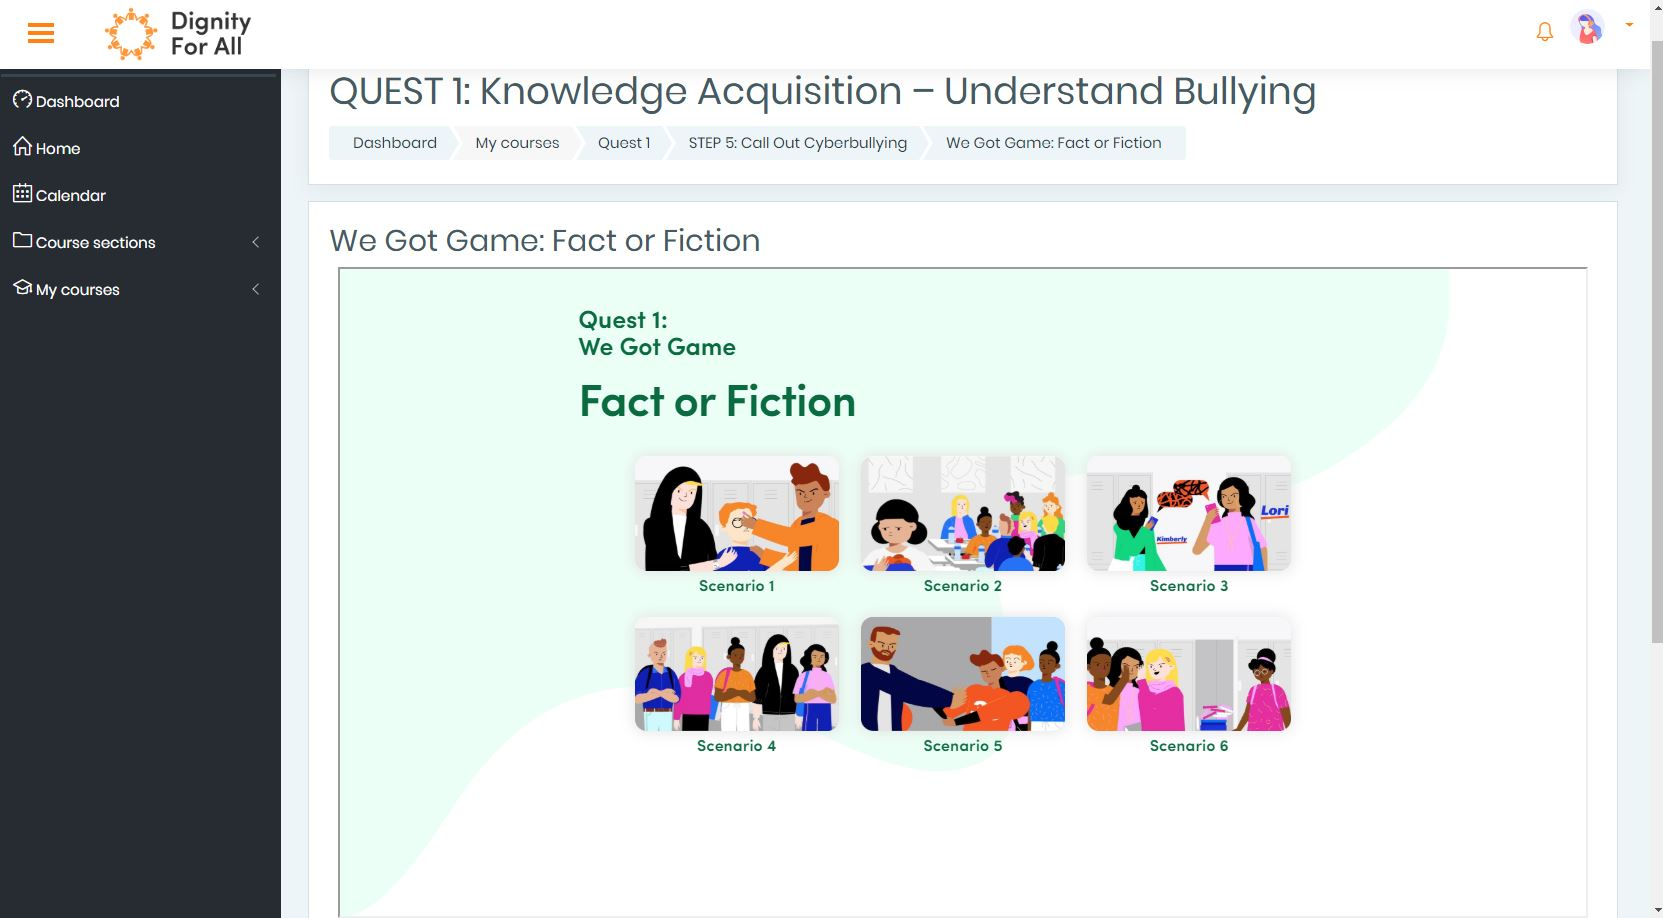 2019-05-24 13_08_09-Quest 1_ We Got Game_ Fact or Fiction